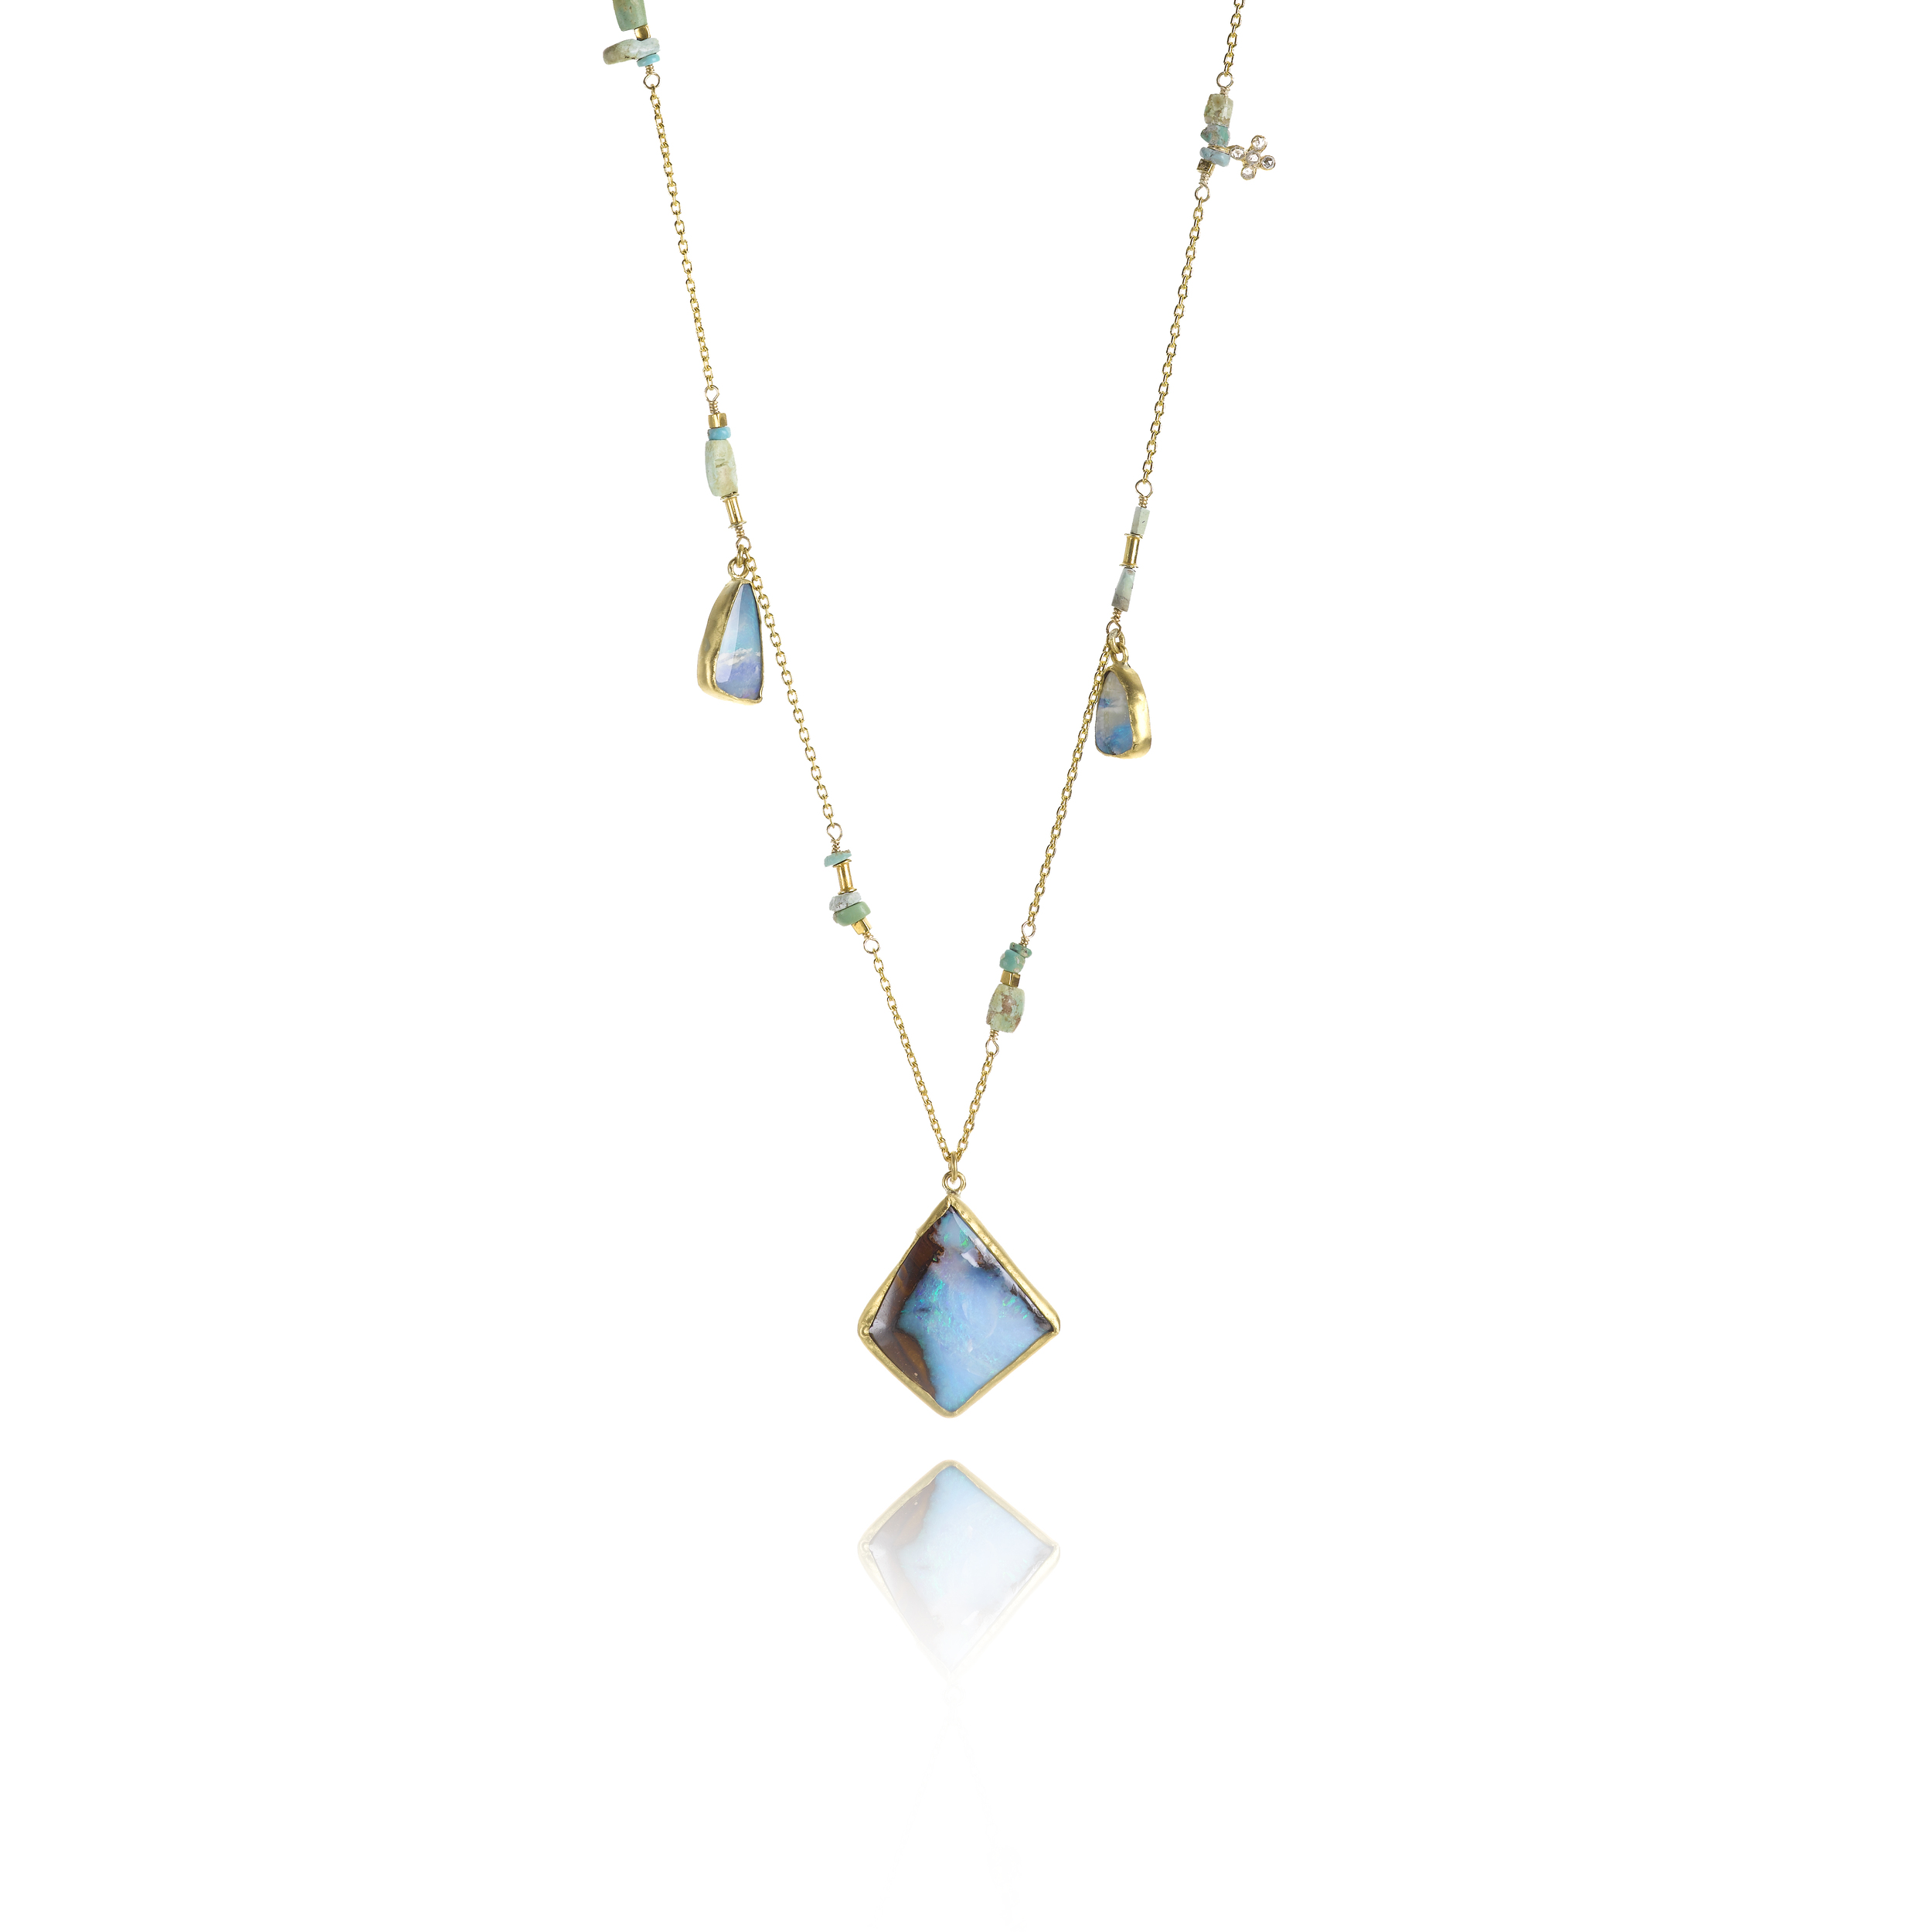 22k necklace with Boulder opal, turquoise and diamond,$6,580.